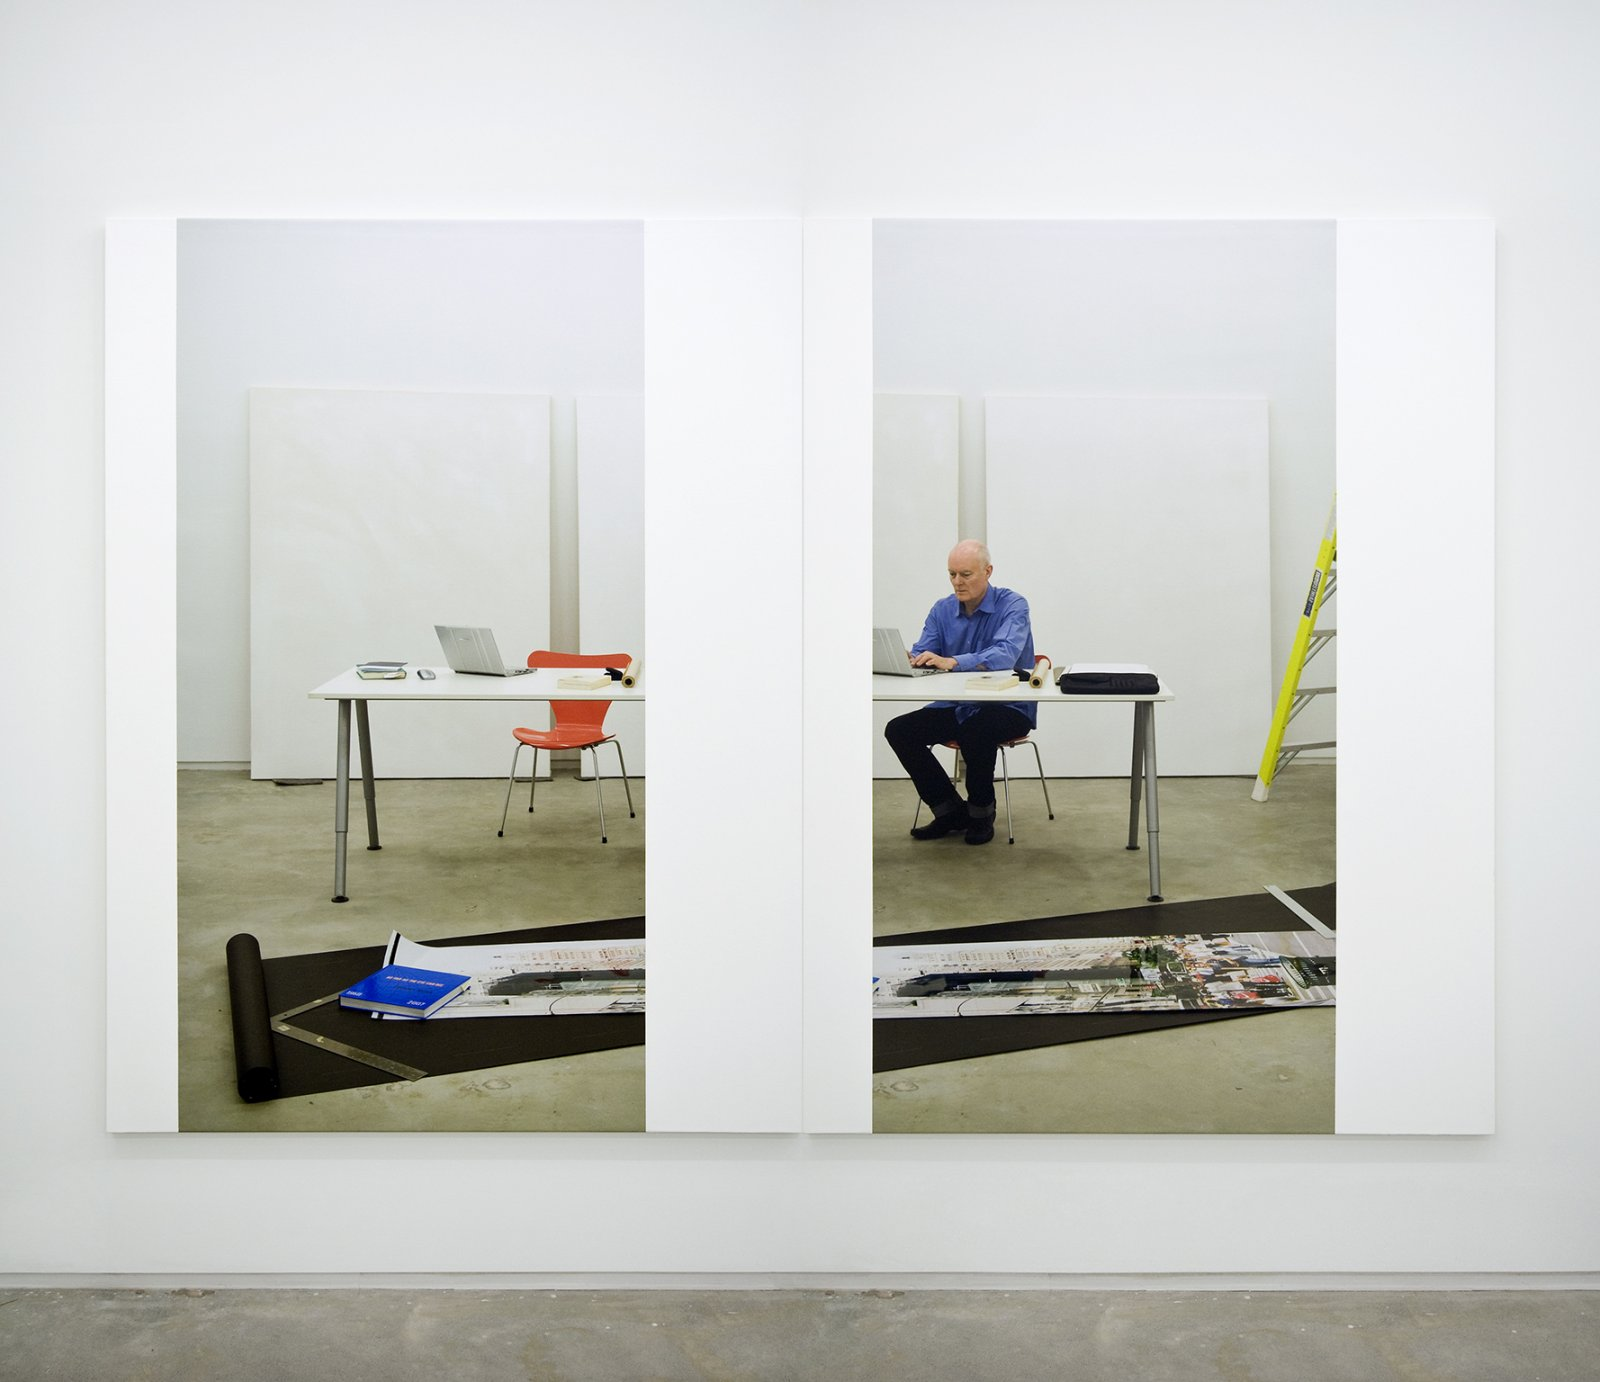 Ian Wallace,At Work 2008, 2008, photolaminate with acrylic on canvas diptych panels, 80 x 120 in. (203 x 305 cm)